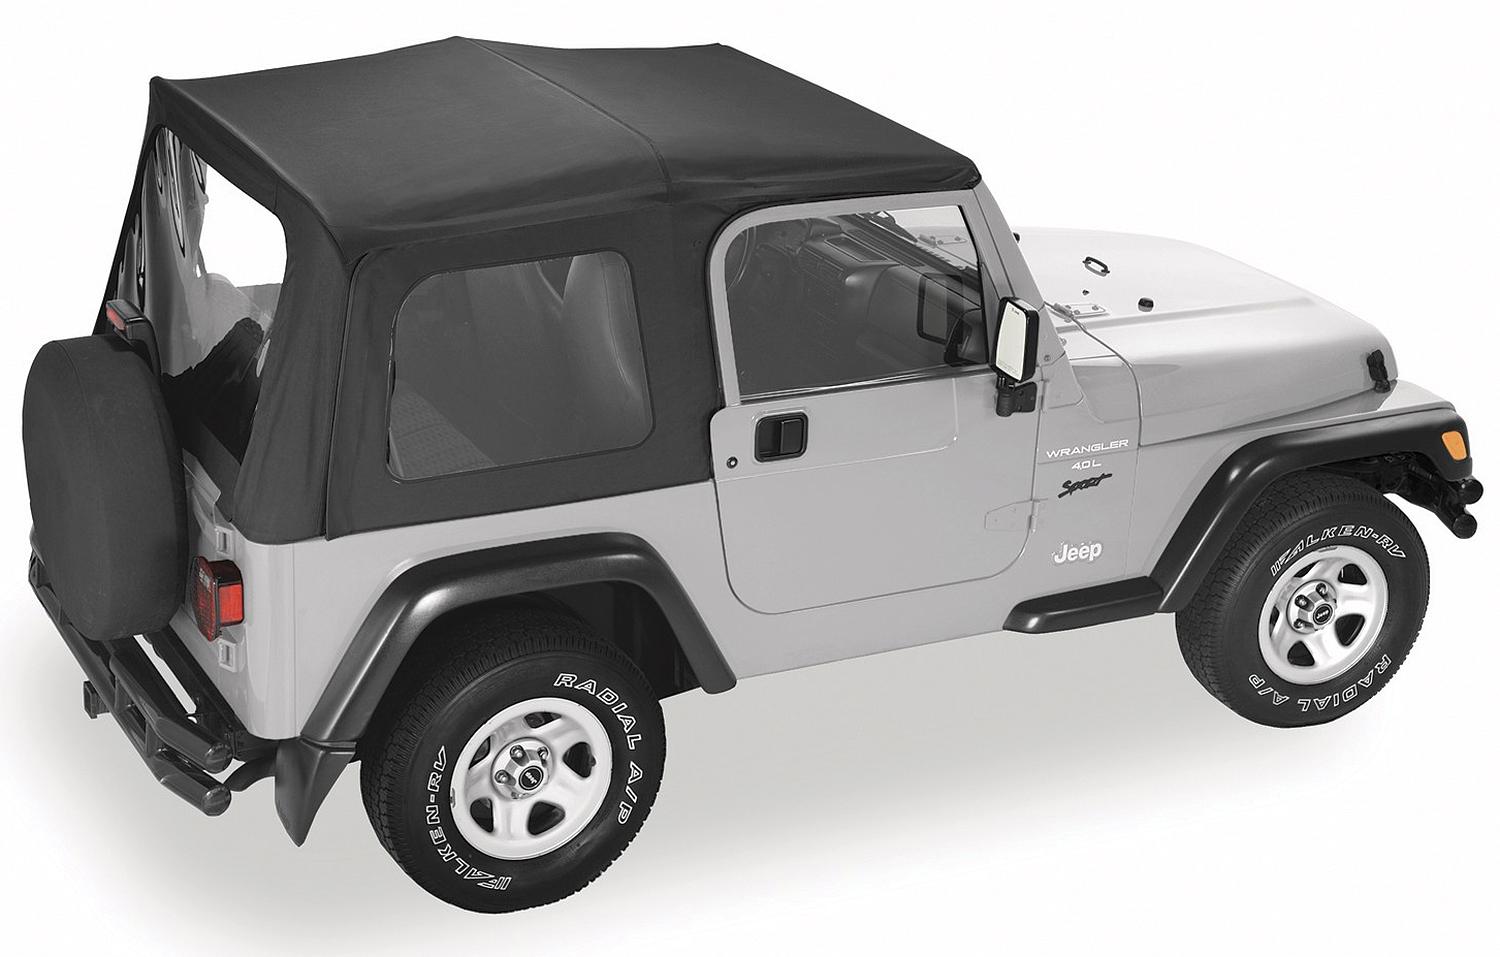 Pavement Ends 51131-35 By Bestop Black Diamond Replay OEM Replacement Soft Top Clear Windows w/ Upper Door Skins Jeep Wrangler 1997-2006